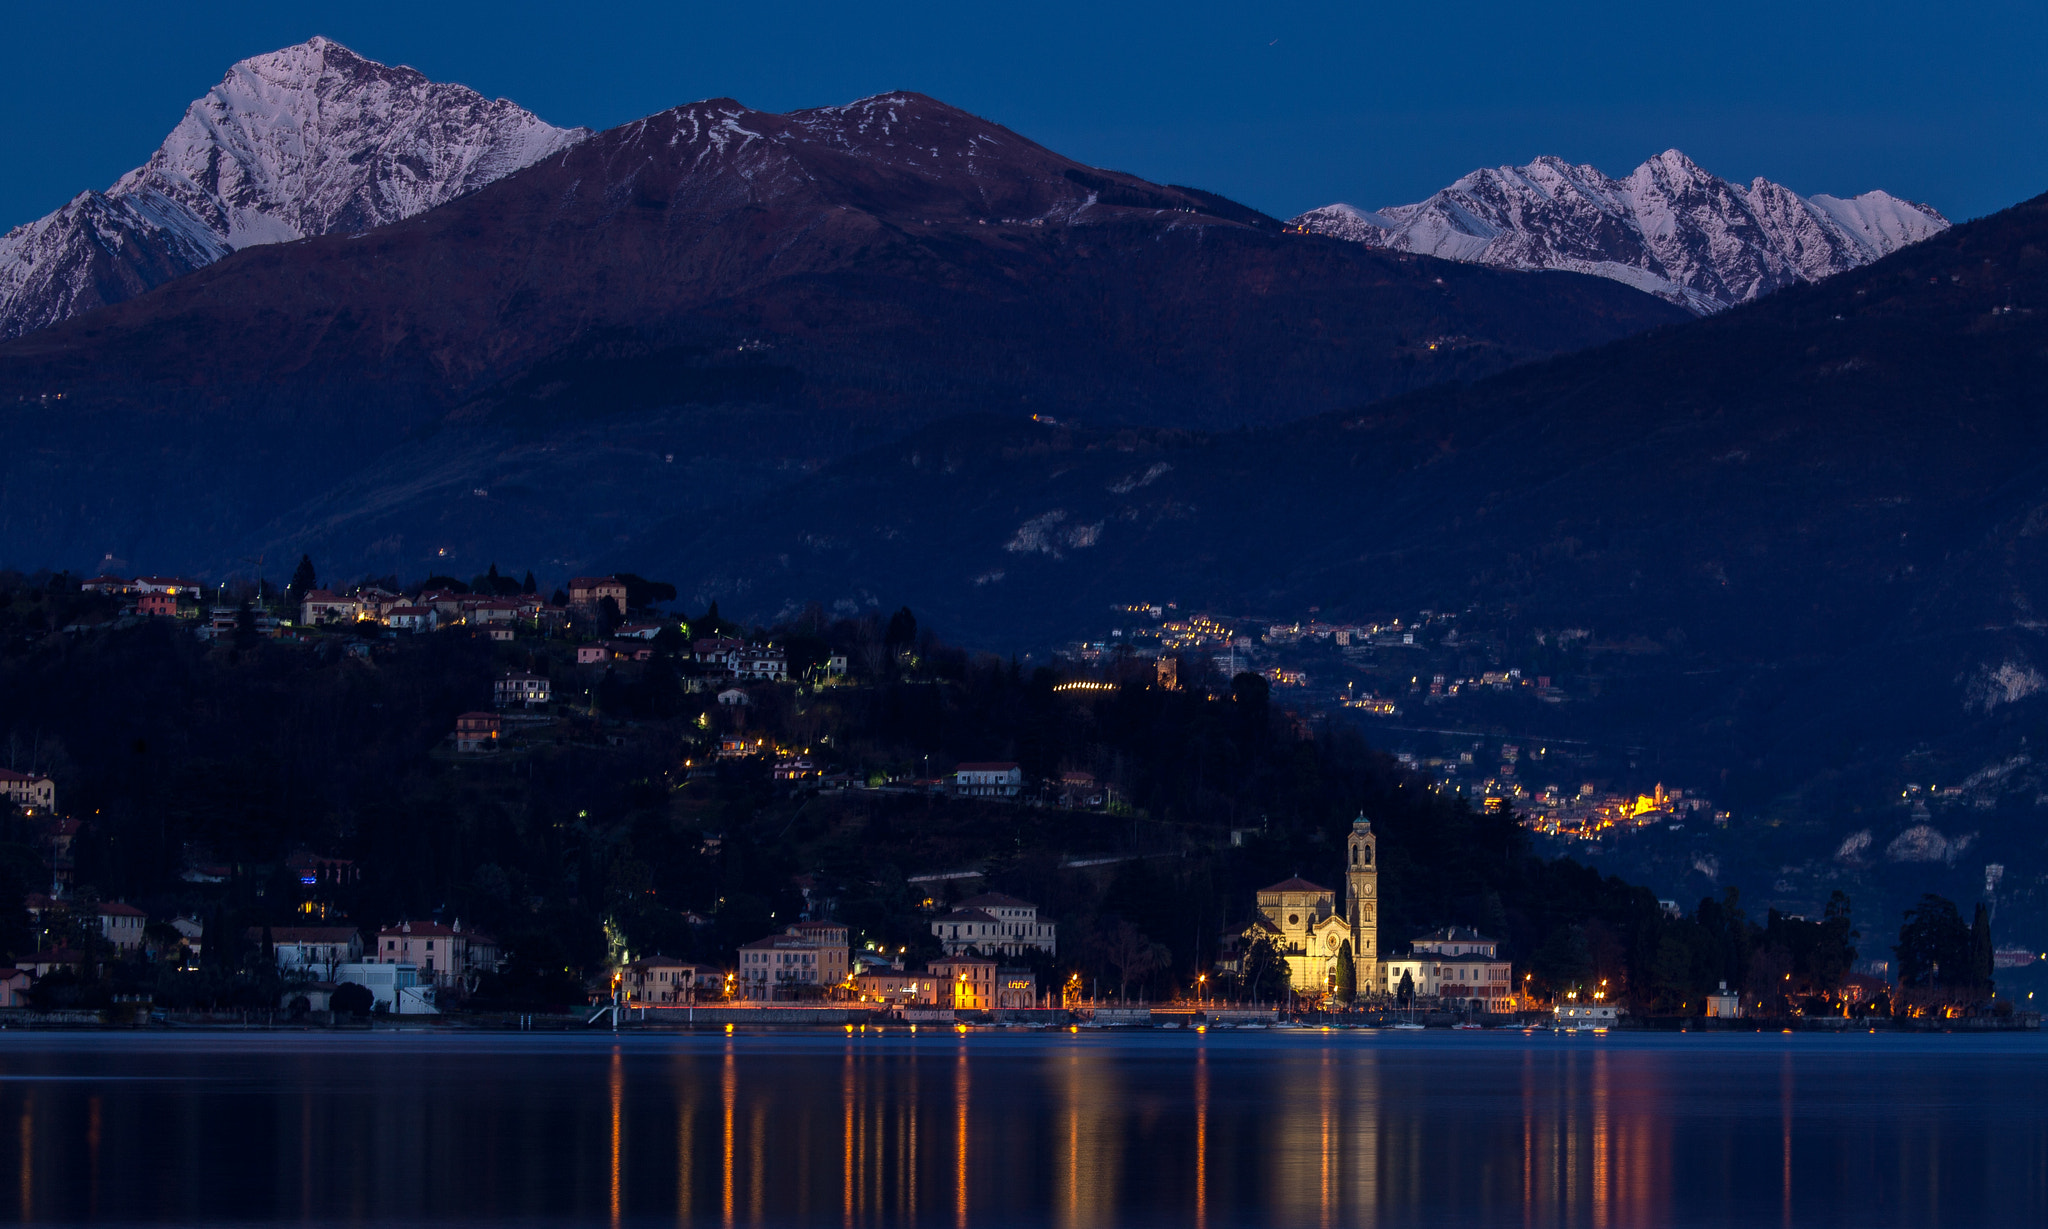 Photograph Lago di Como - Tremezzo (from Lenno) by Roberto Roberti on 500px